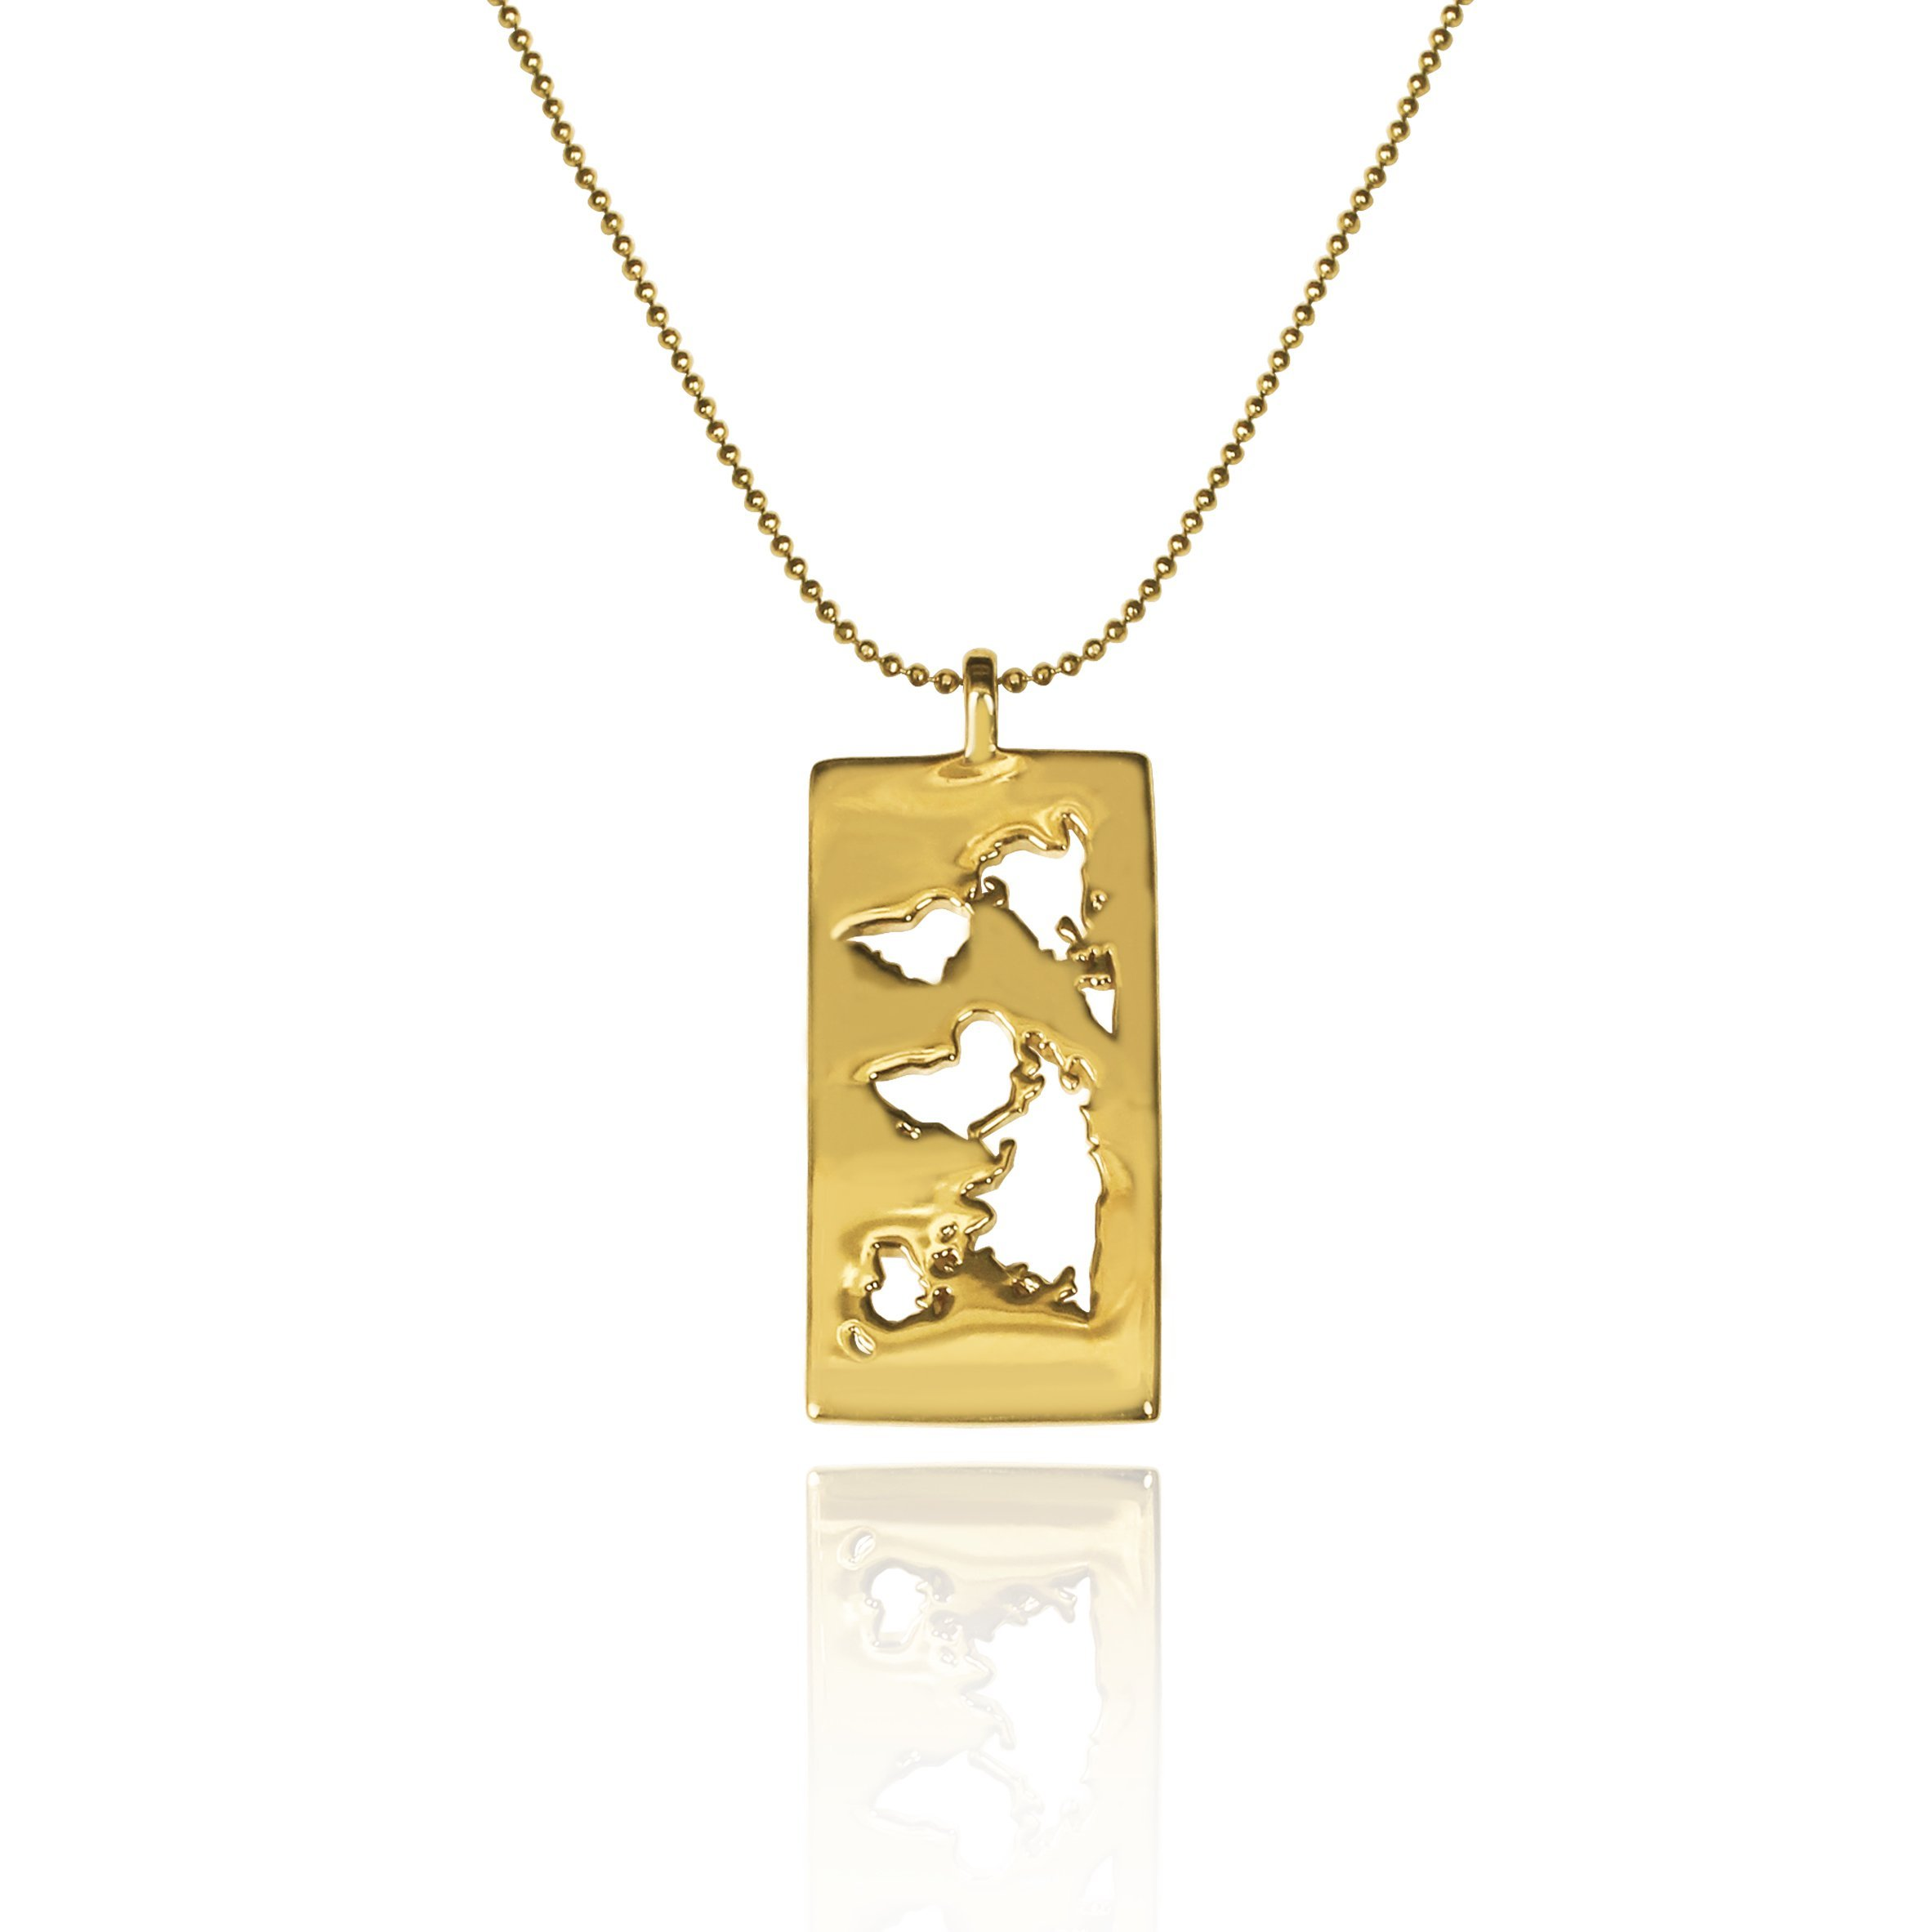 24K Gold Plated World Map Pendant necklace Travel Jewelry